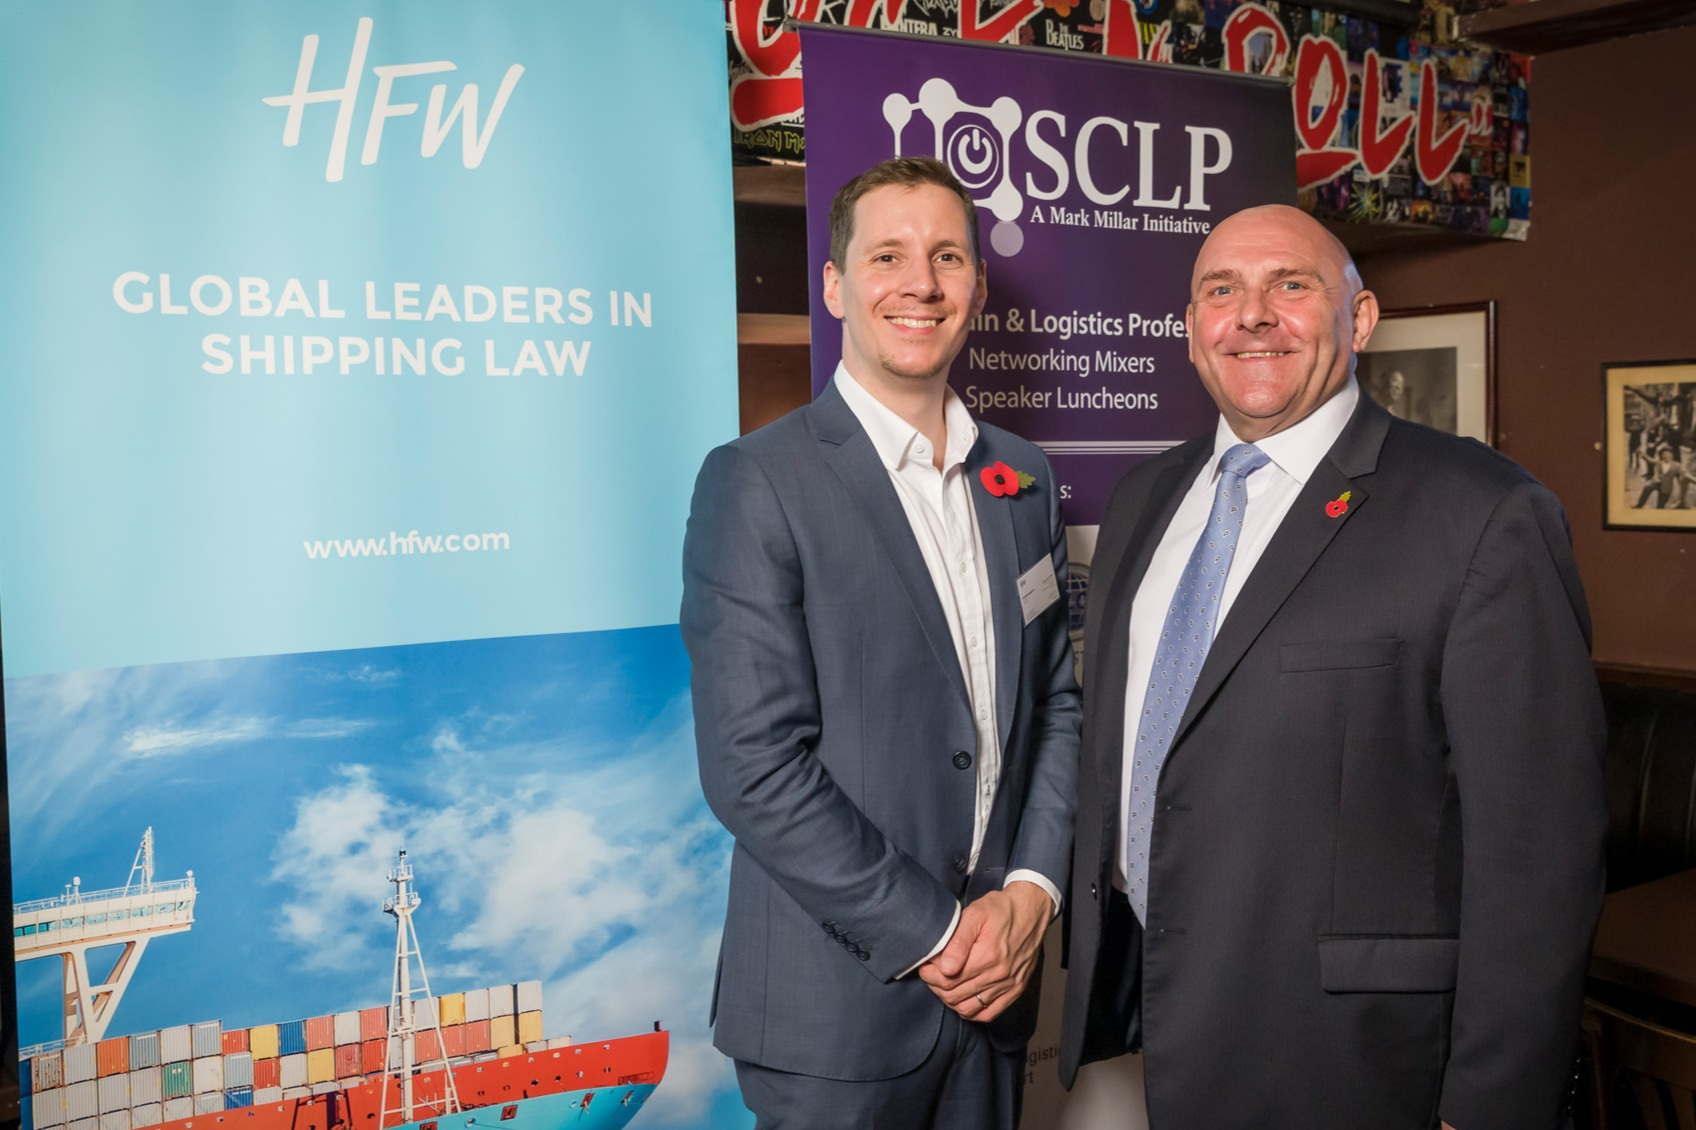 Edward Beeley, Solicitor Registered Foreign Lawyer, HFW with Mark Millar